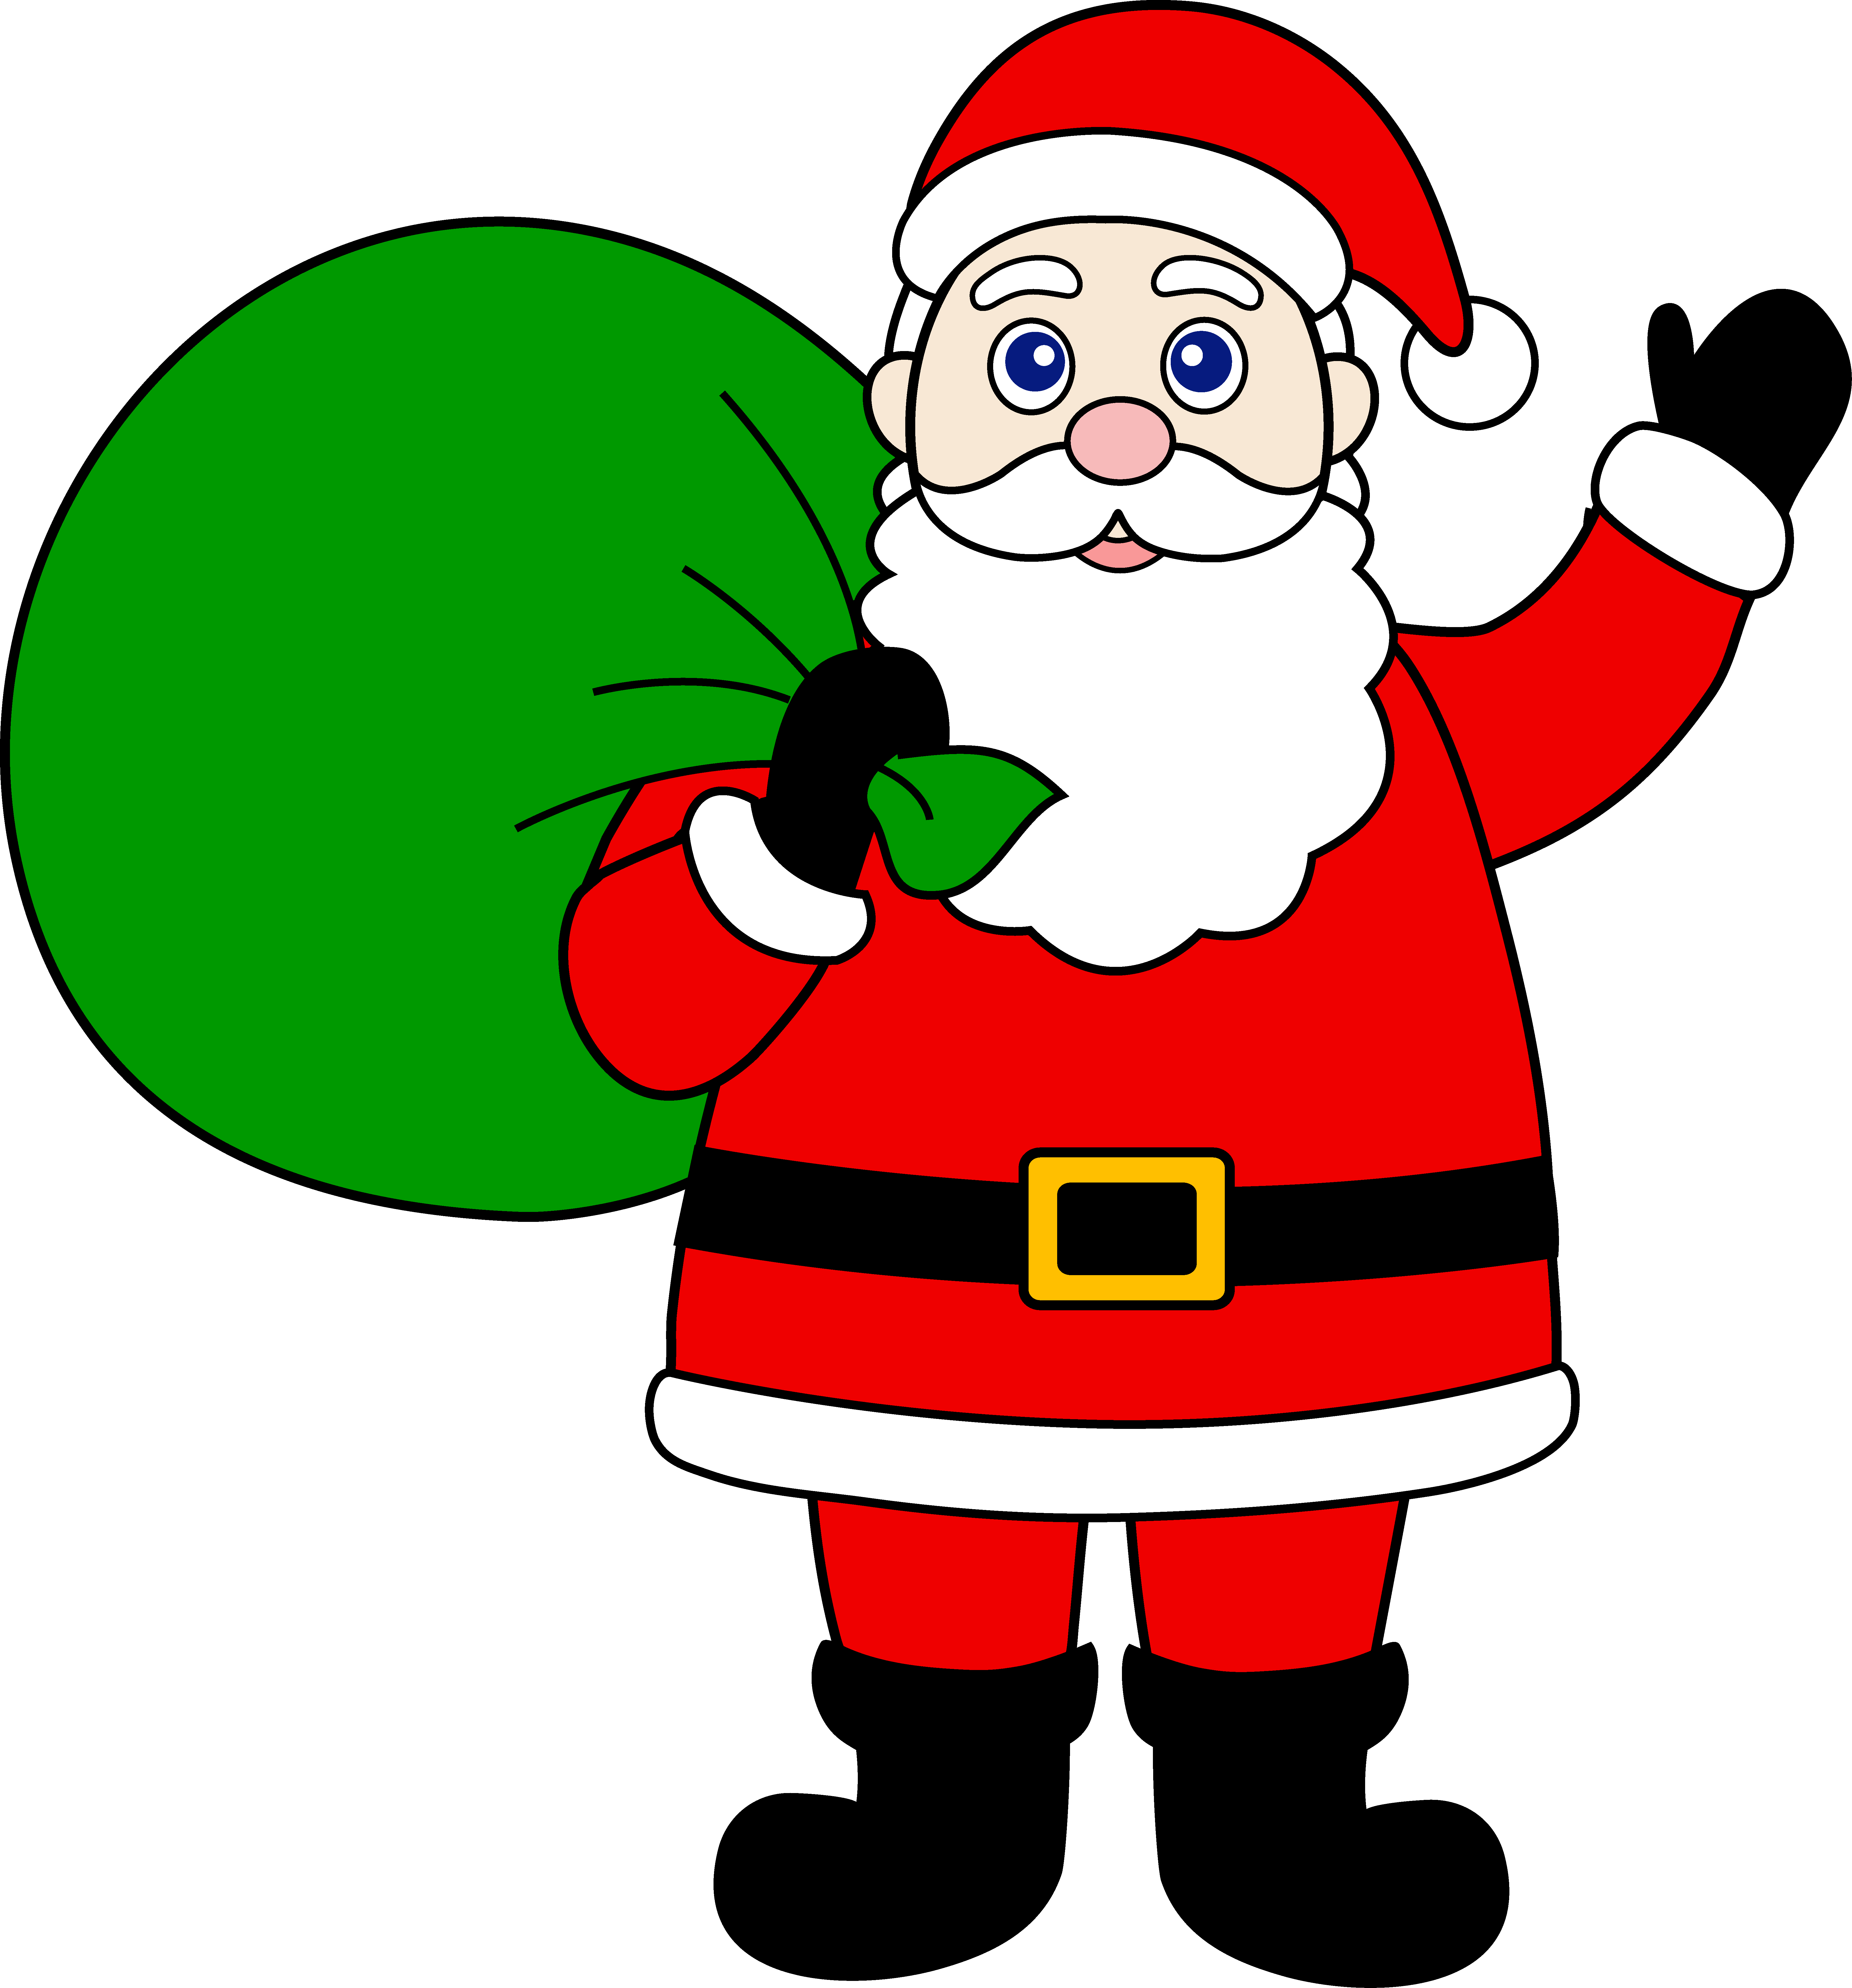 Free santa clause clipart graphic library download Christmas Santa Claus Clipart | Clipart Panda - Free Clipart Images graphic library download